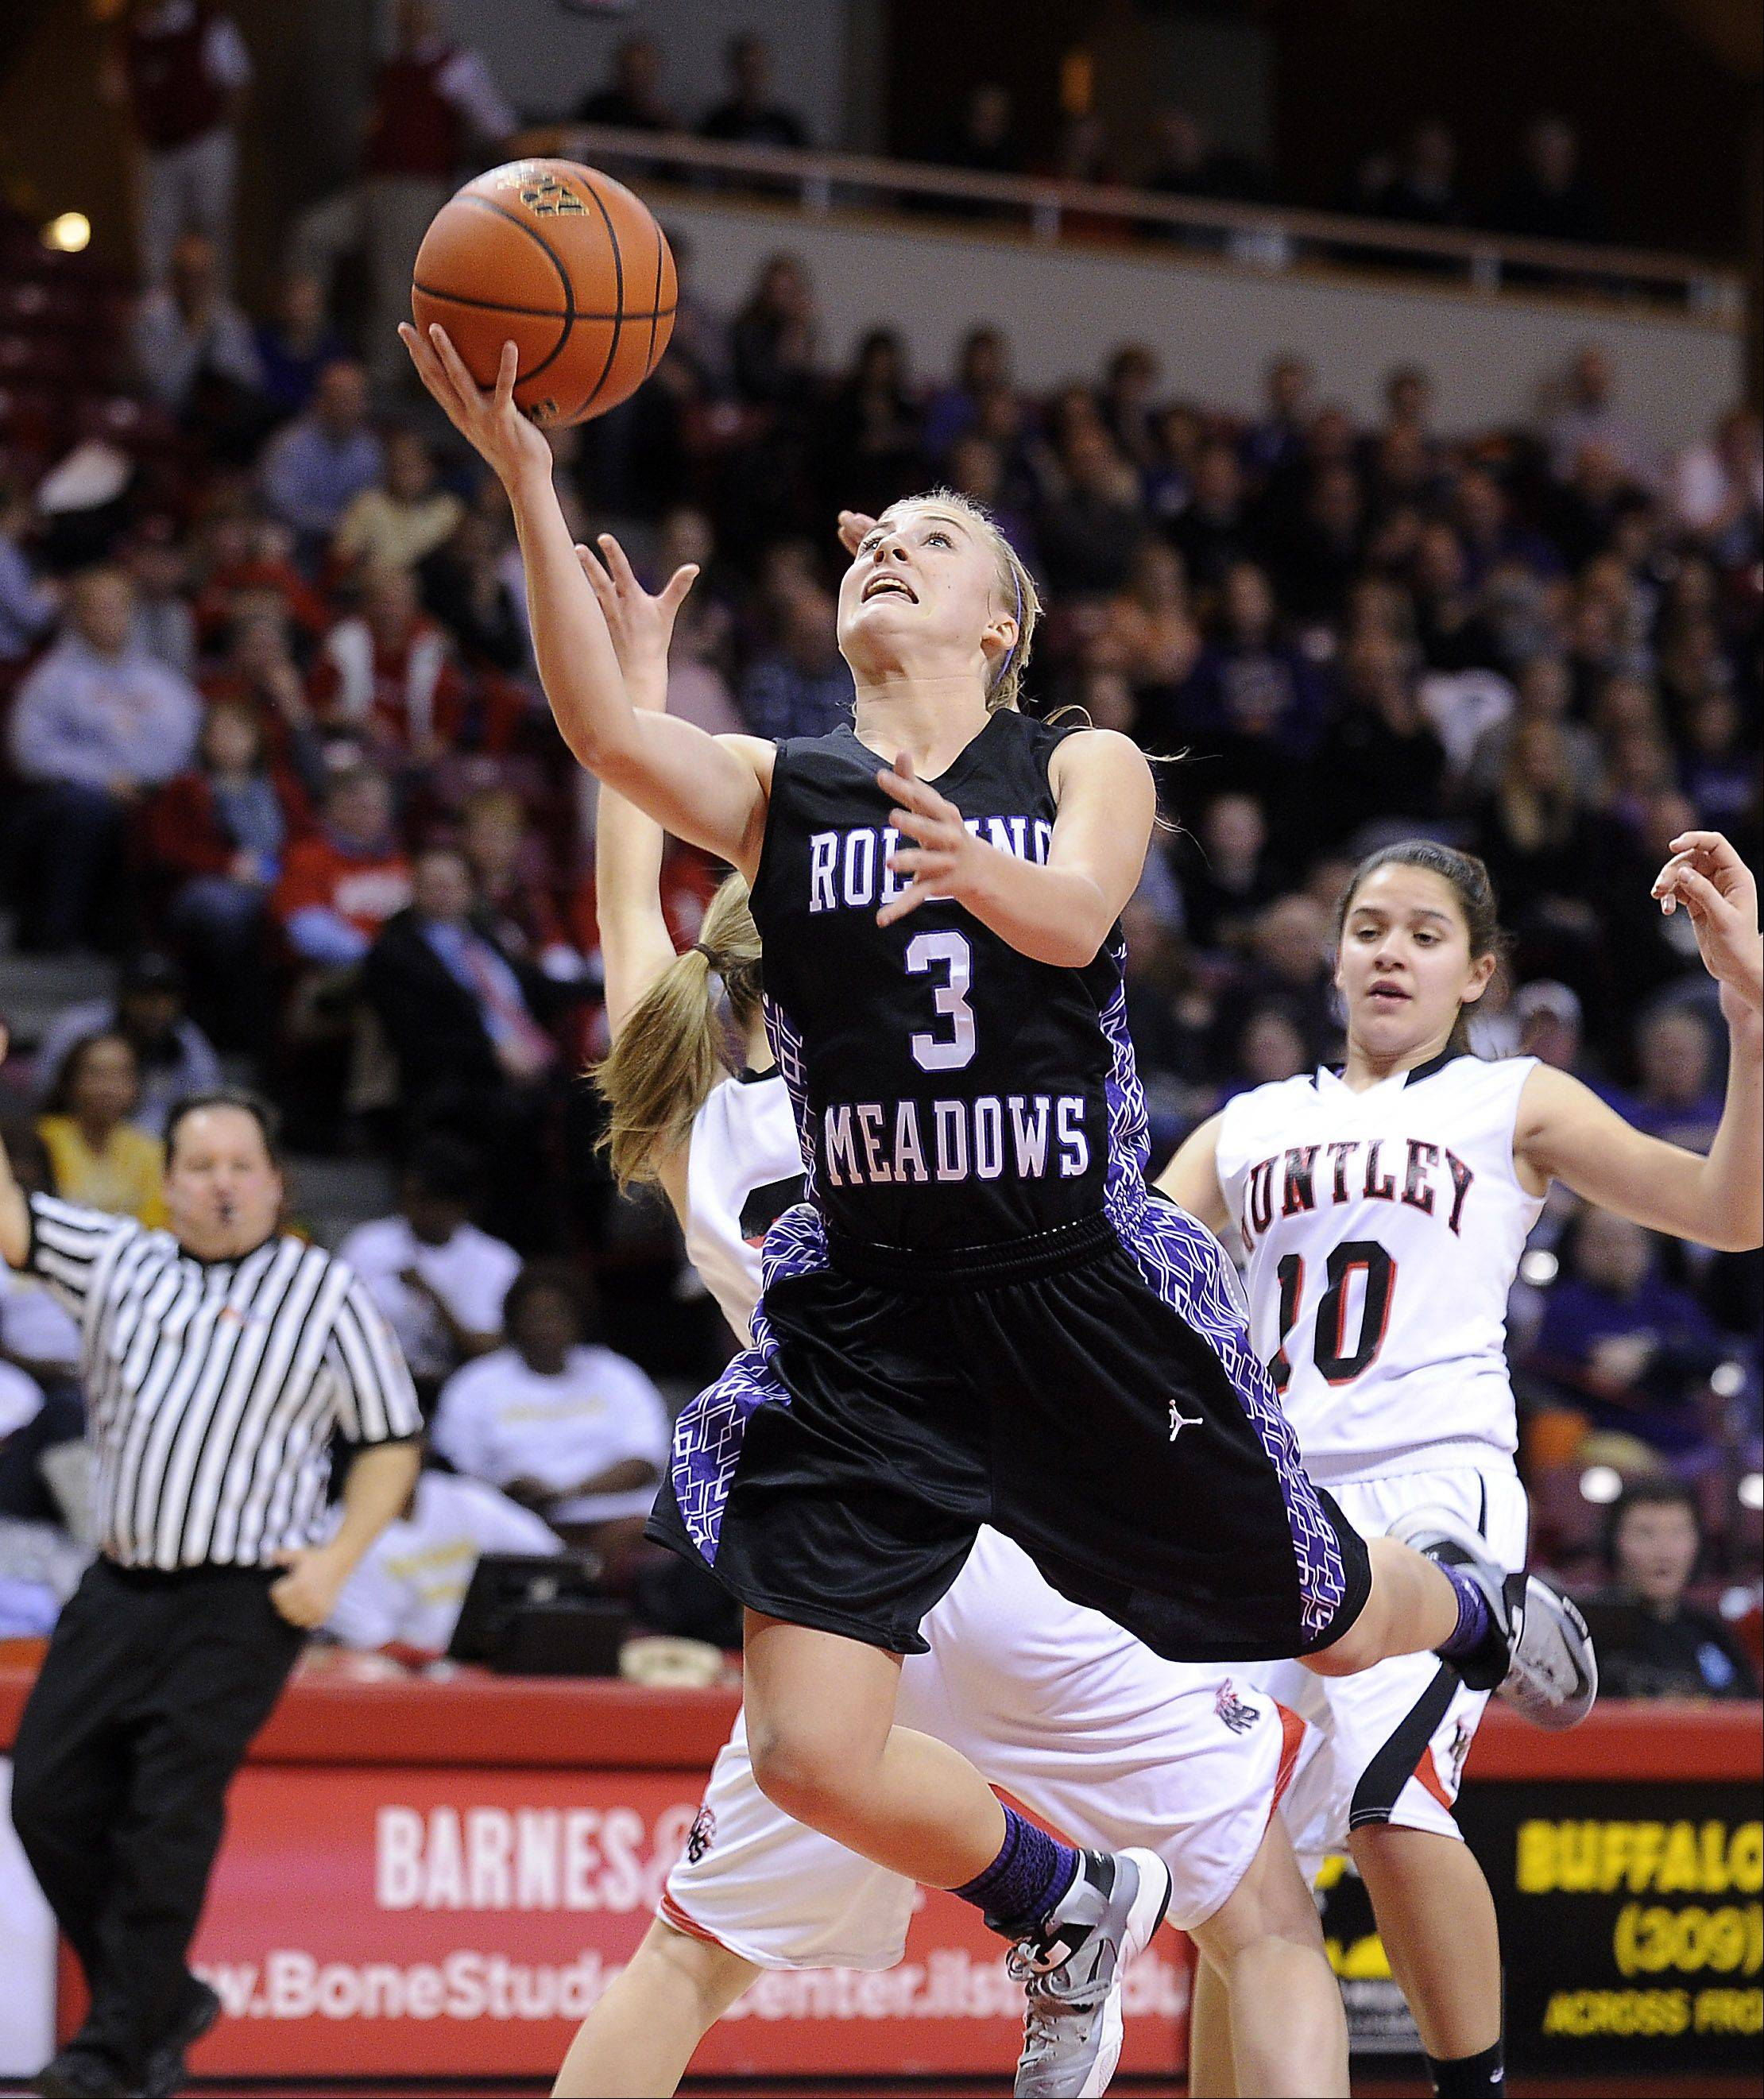 Rolling Meadows' Jackie Kemph delivers to the basket despite pressure from Huntley's defense during the Class 4A girls basketball semifinals in Normal on Friday.